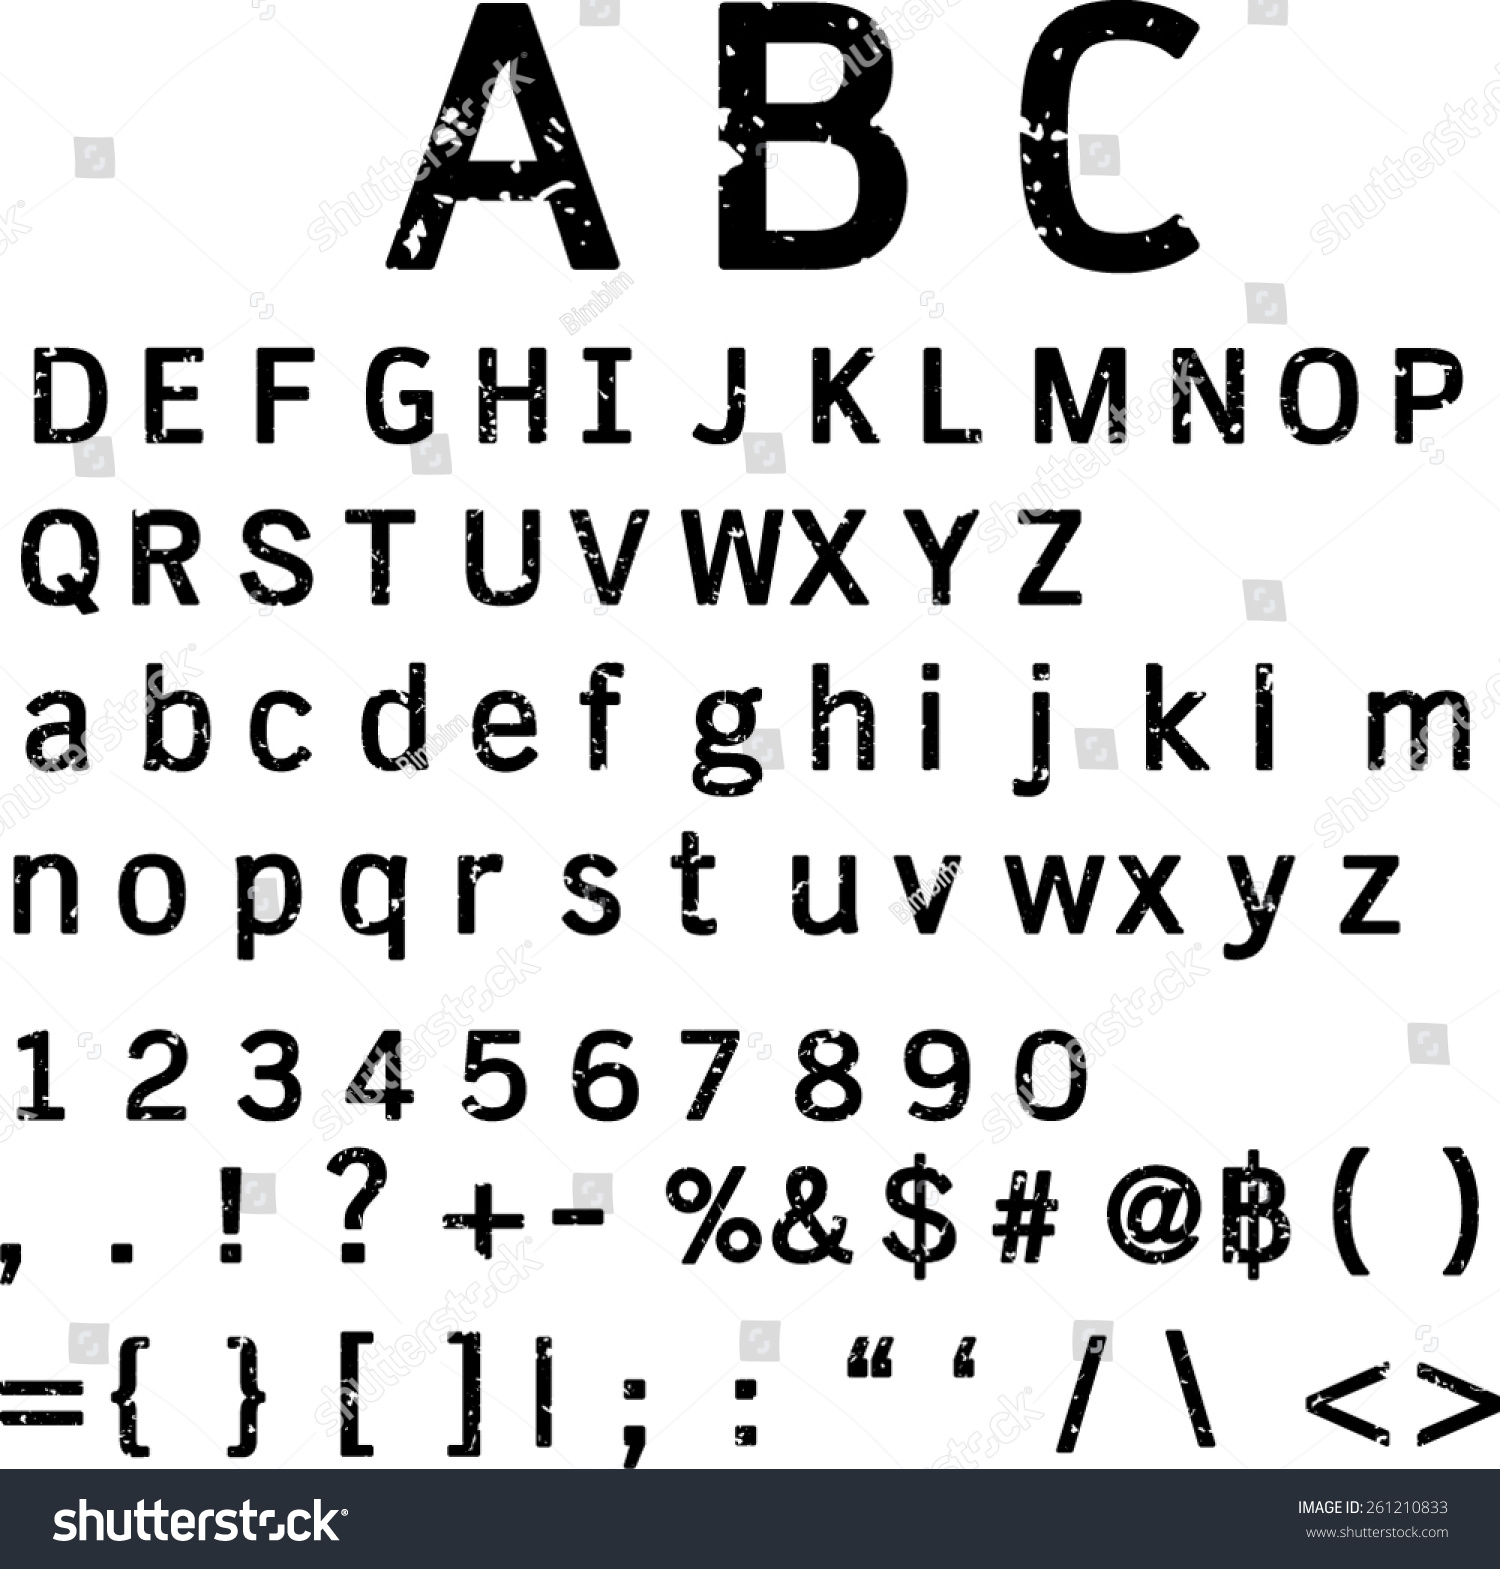 Retro vintage typography scratchy font other stock vector scratchy font and other symbols on keyboard uppercase and lowercase letters biocorpaavc Image collections